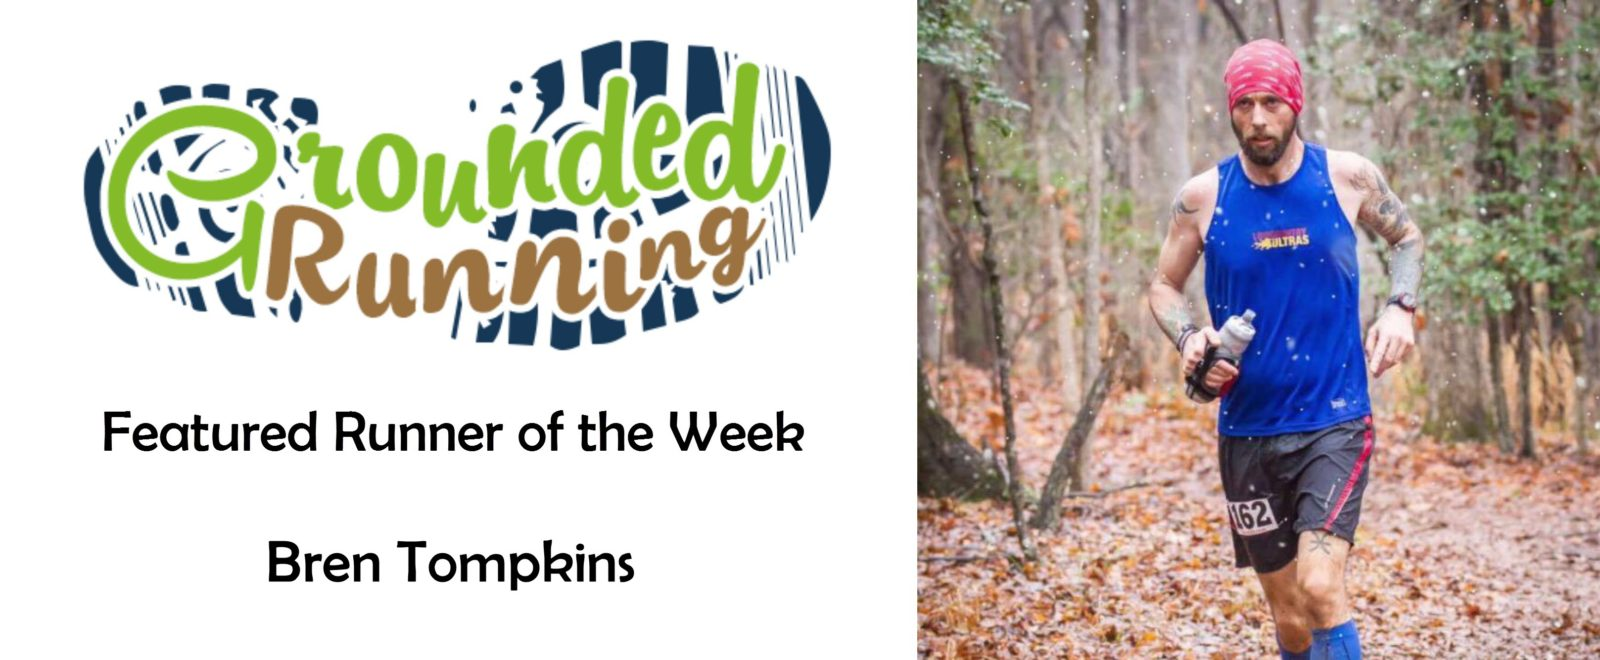 Bren Tompkins - Featured Runner of the Week